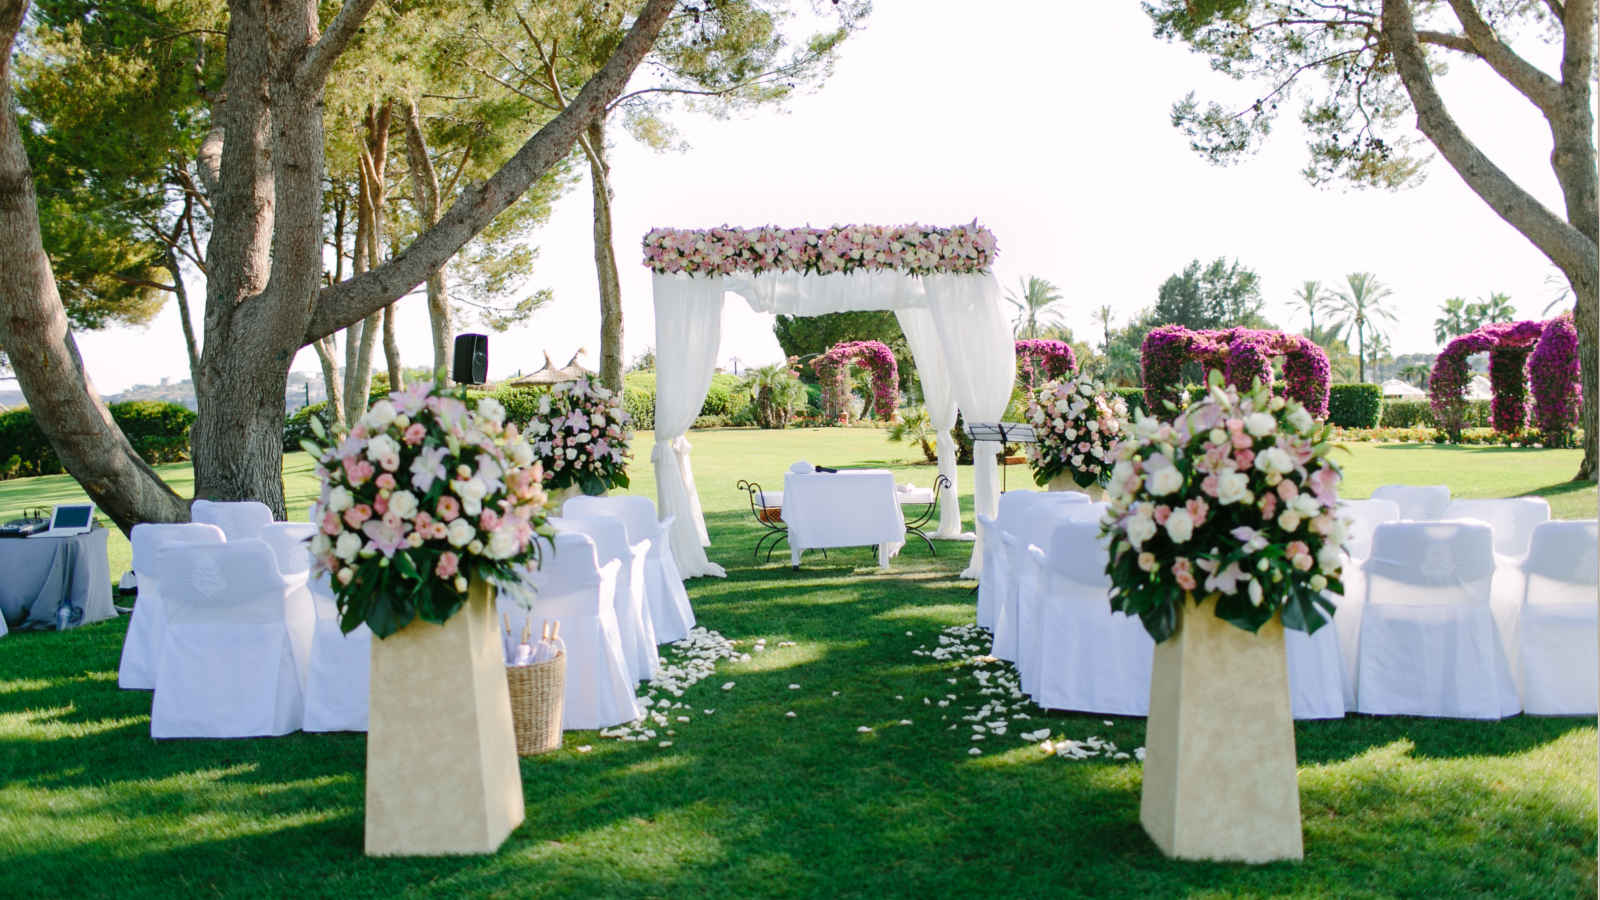 Your fairytale ceremony in a romantic setting by the Mediterranean Sea